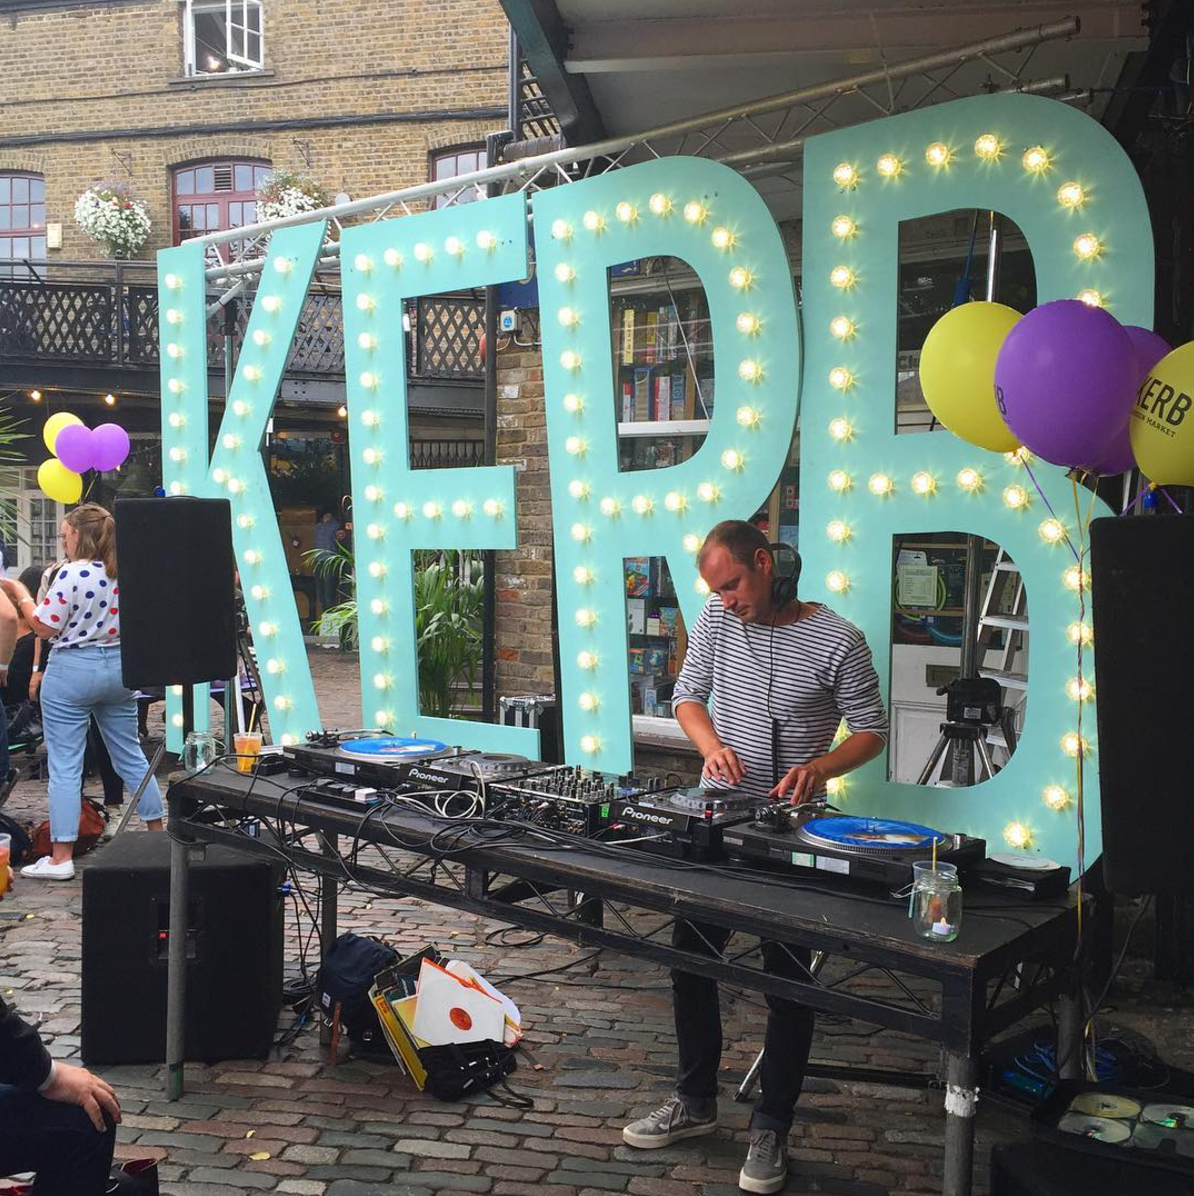 Our DJs perform at a range of launch parties and special events, as well as knowledgeable curators for talent.